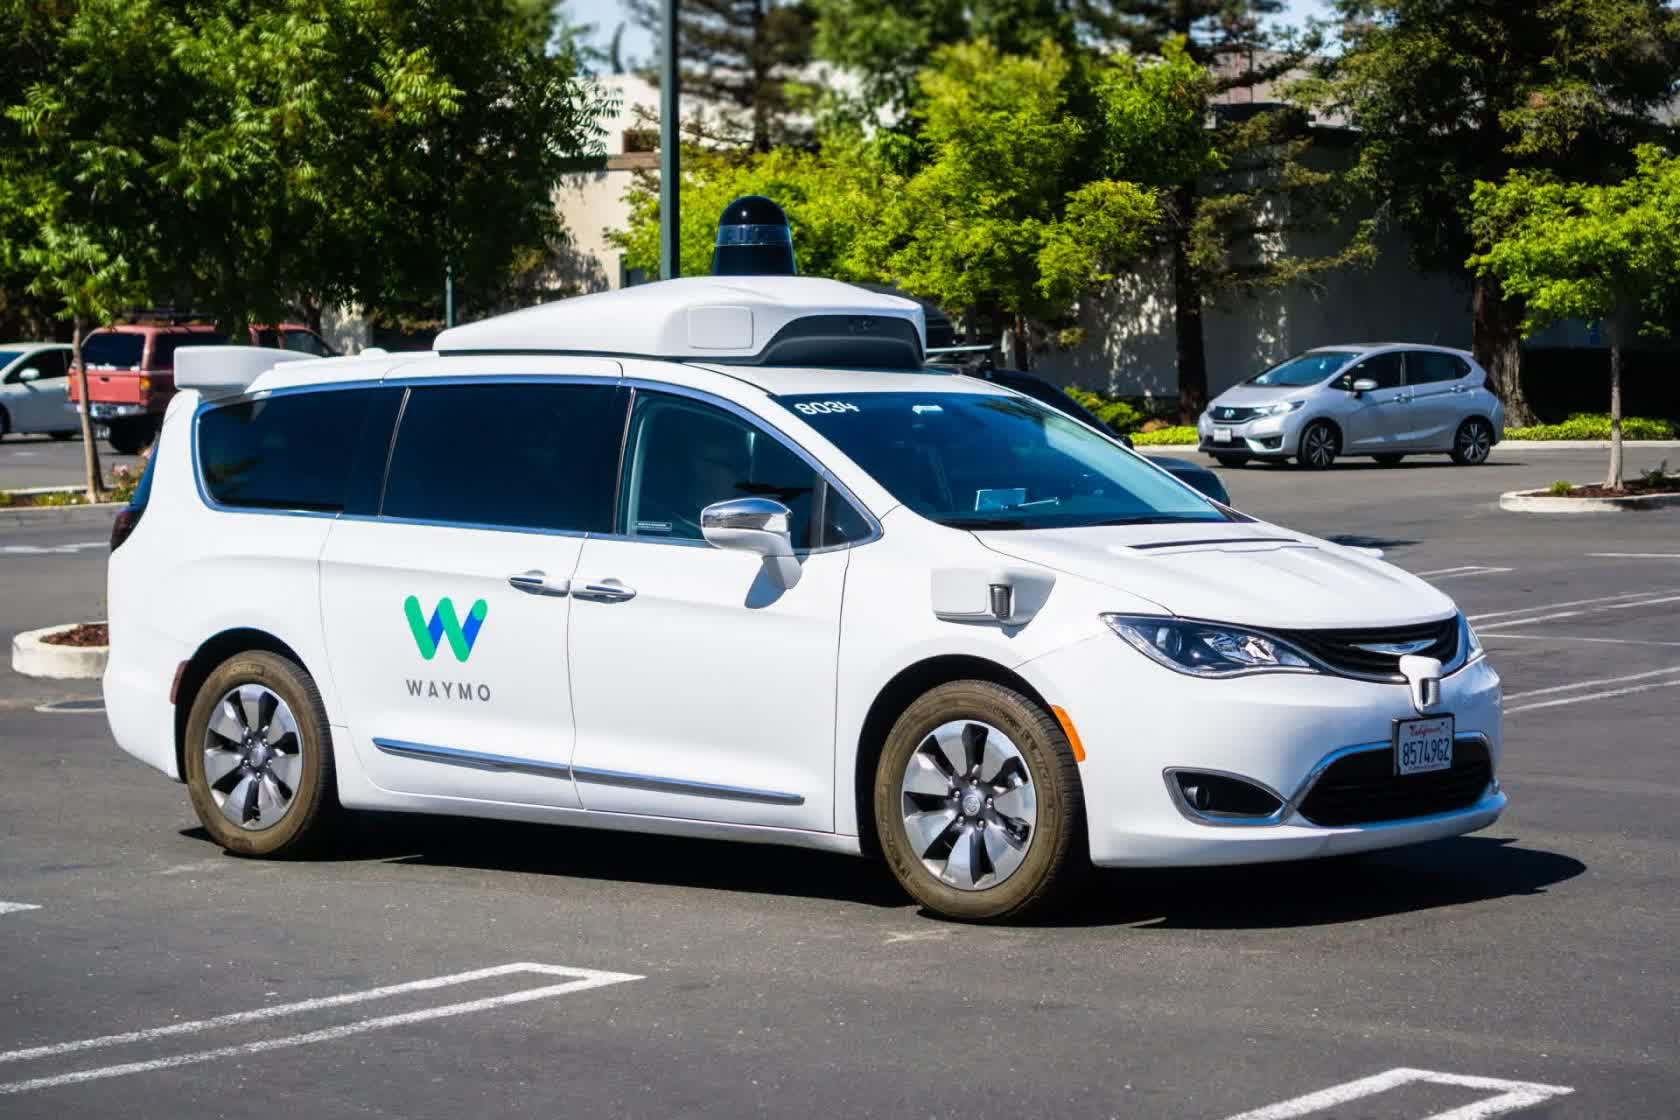 Waymo opens up its driverless taxi service to the general public in Phoenix